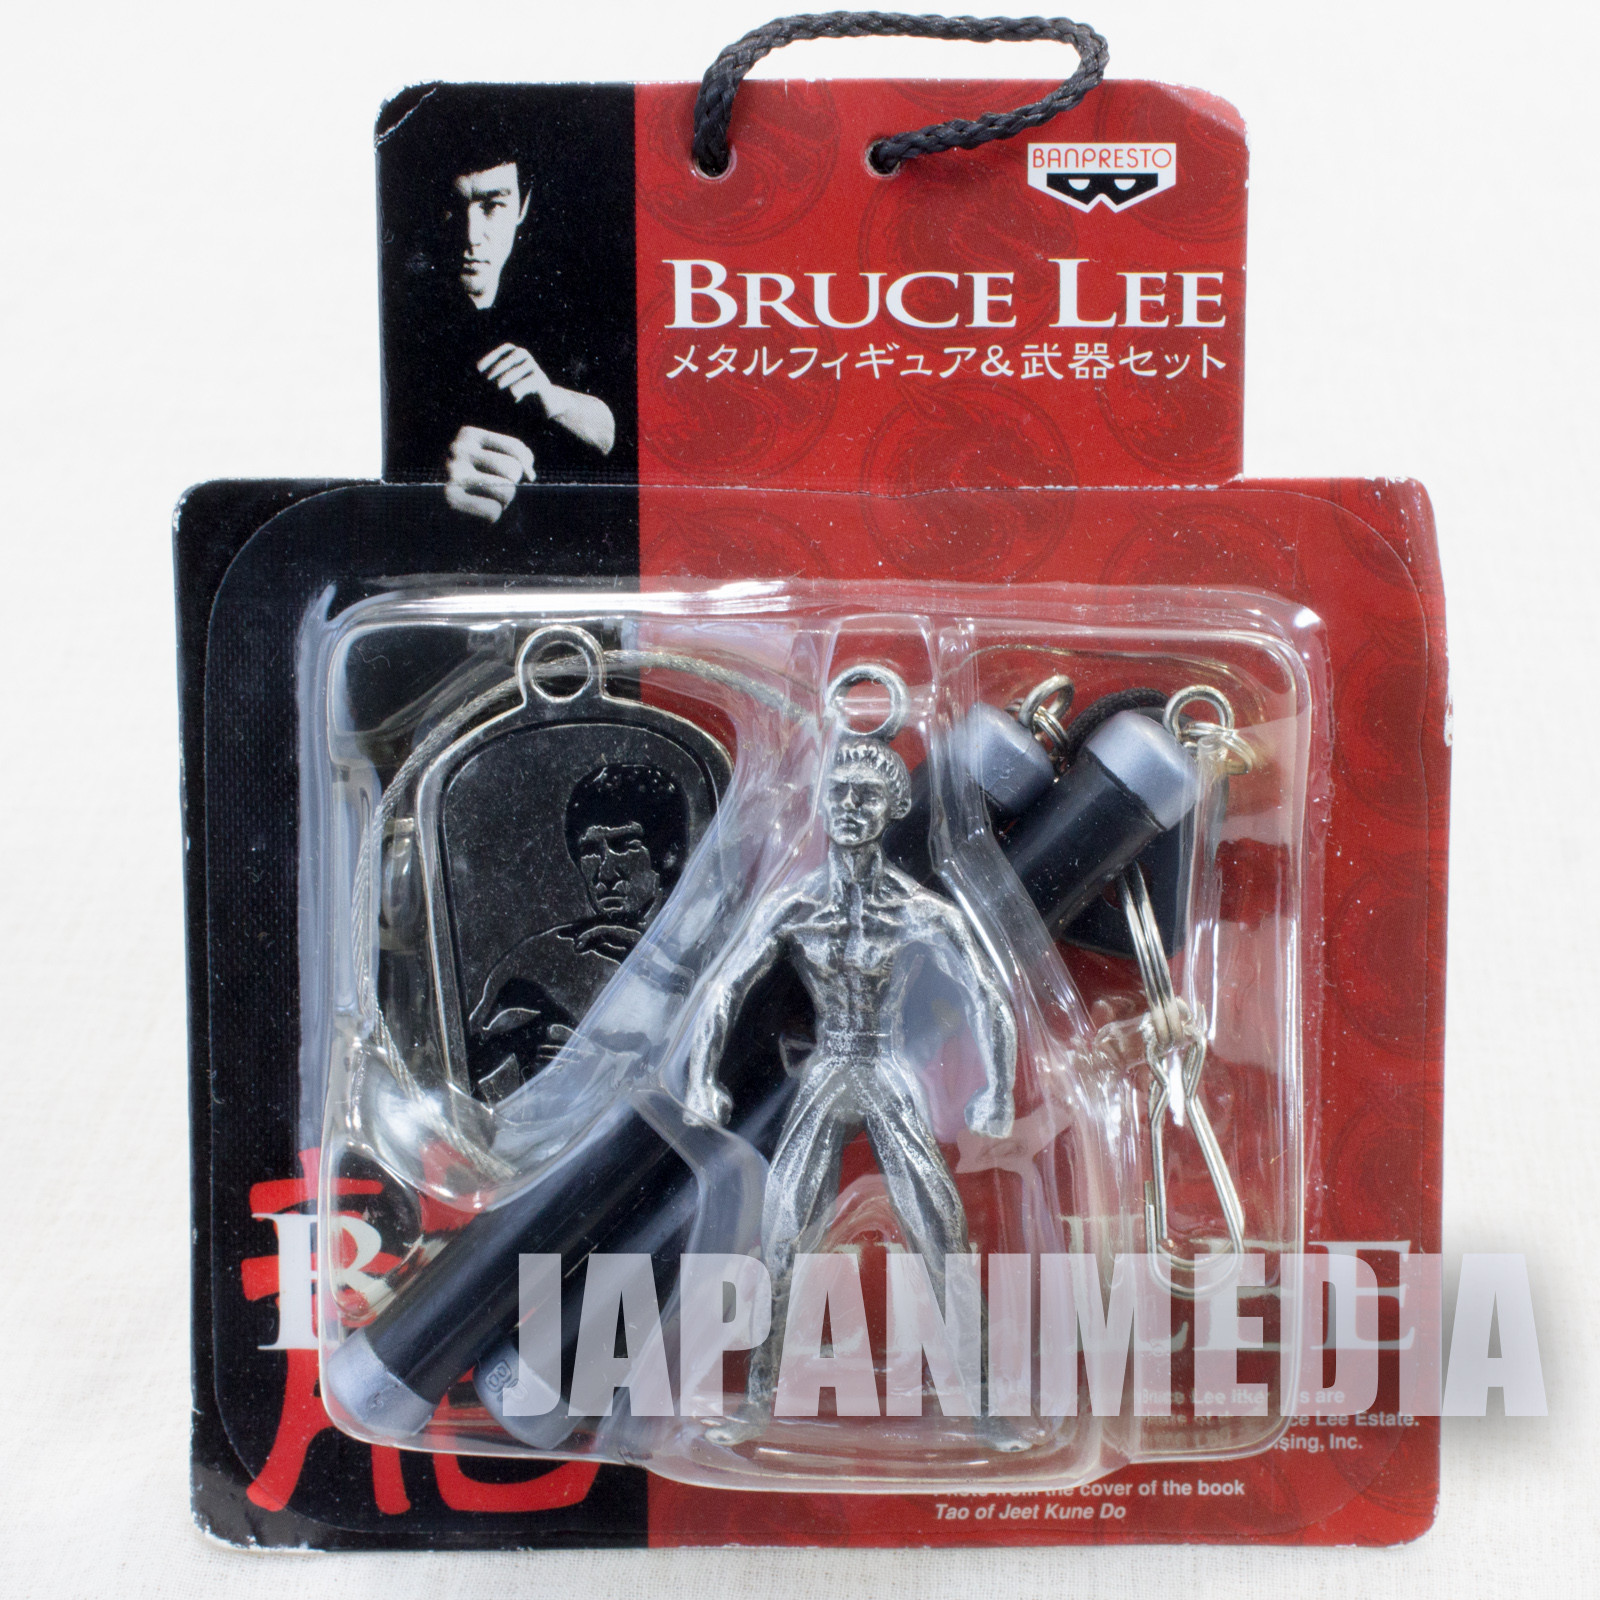 BRUCE LEE Metal Figure & Weapon Mascot Key Chain #1 JAPAN KUNG FU MOVIE